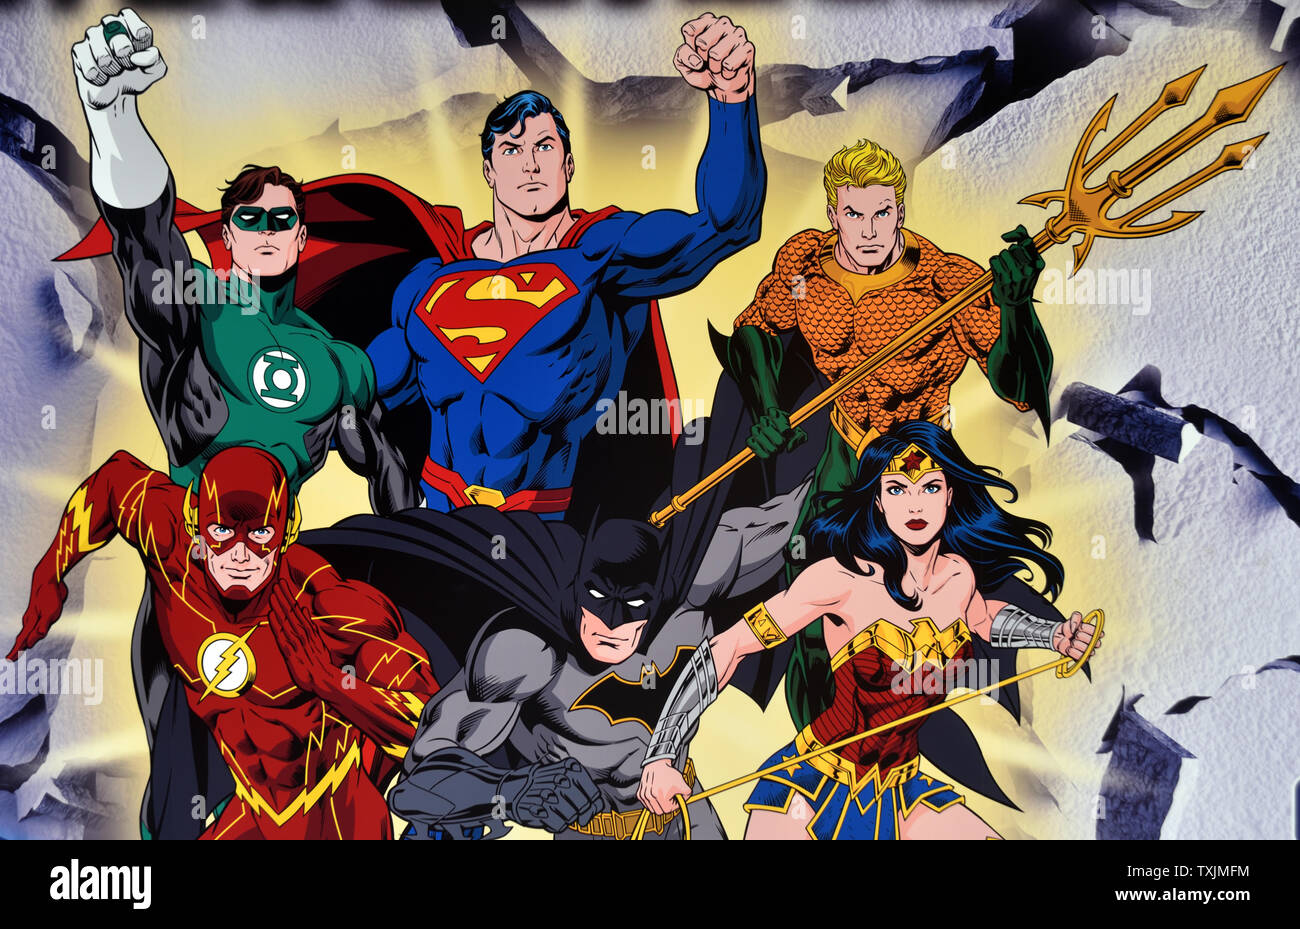 superheros of the justice league ready for action TXJMFM